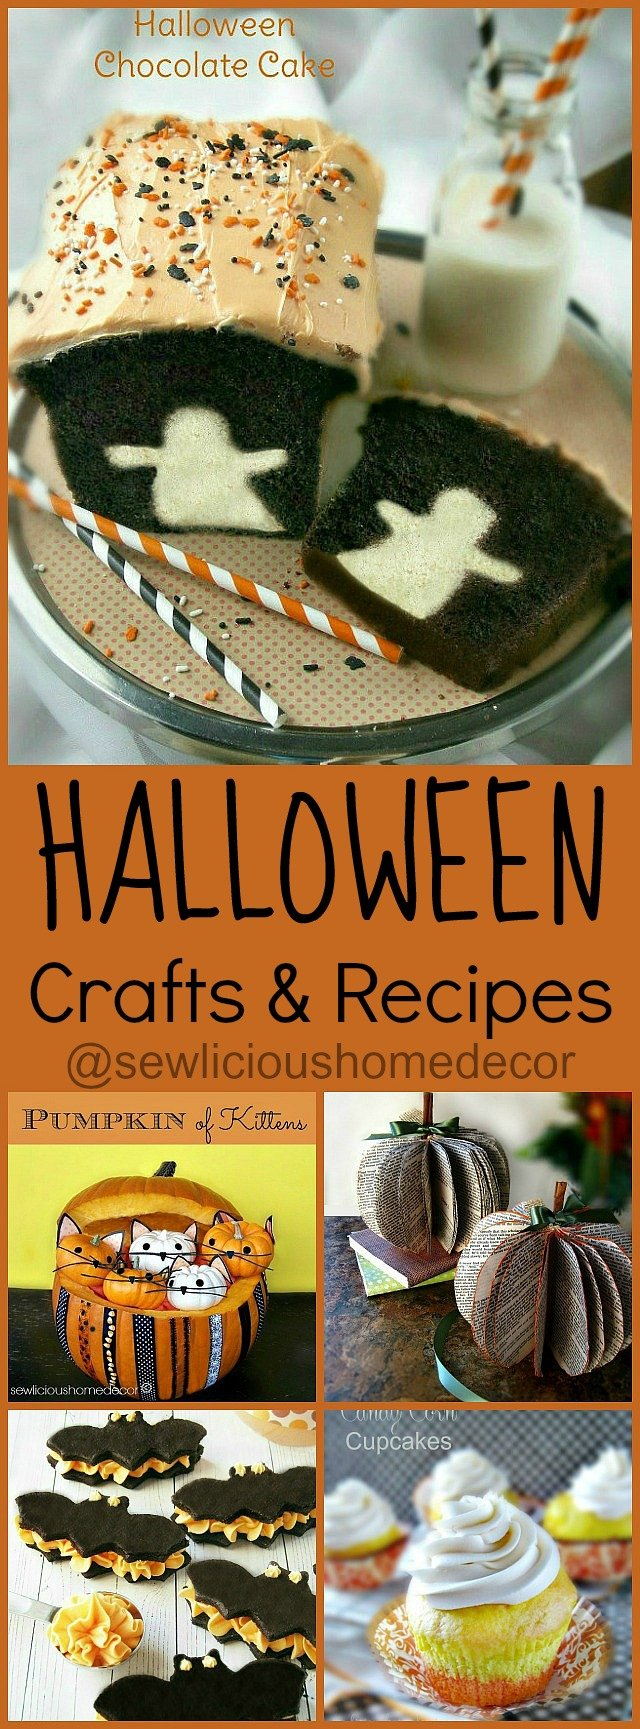 http://sewlicioushomedecor.com/wp-content/uploads/2015/10/Halloween-Crafts-and-Recipes-by-sewlicioushomedecor.com_.jpg